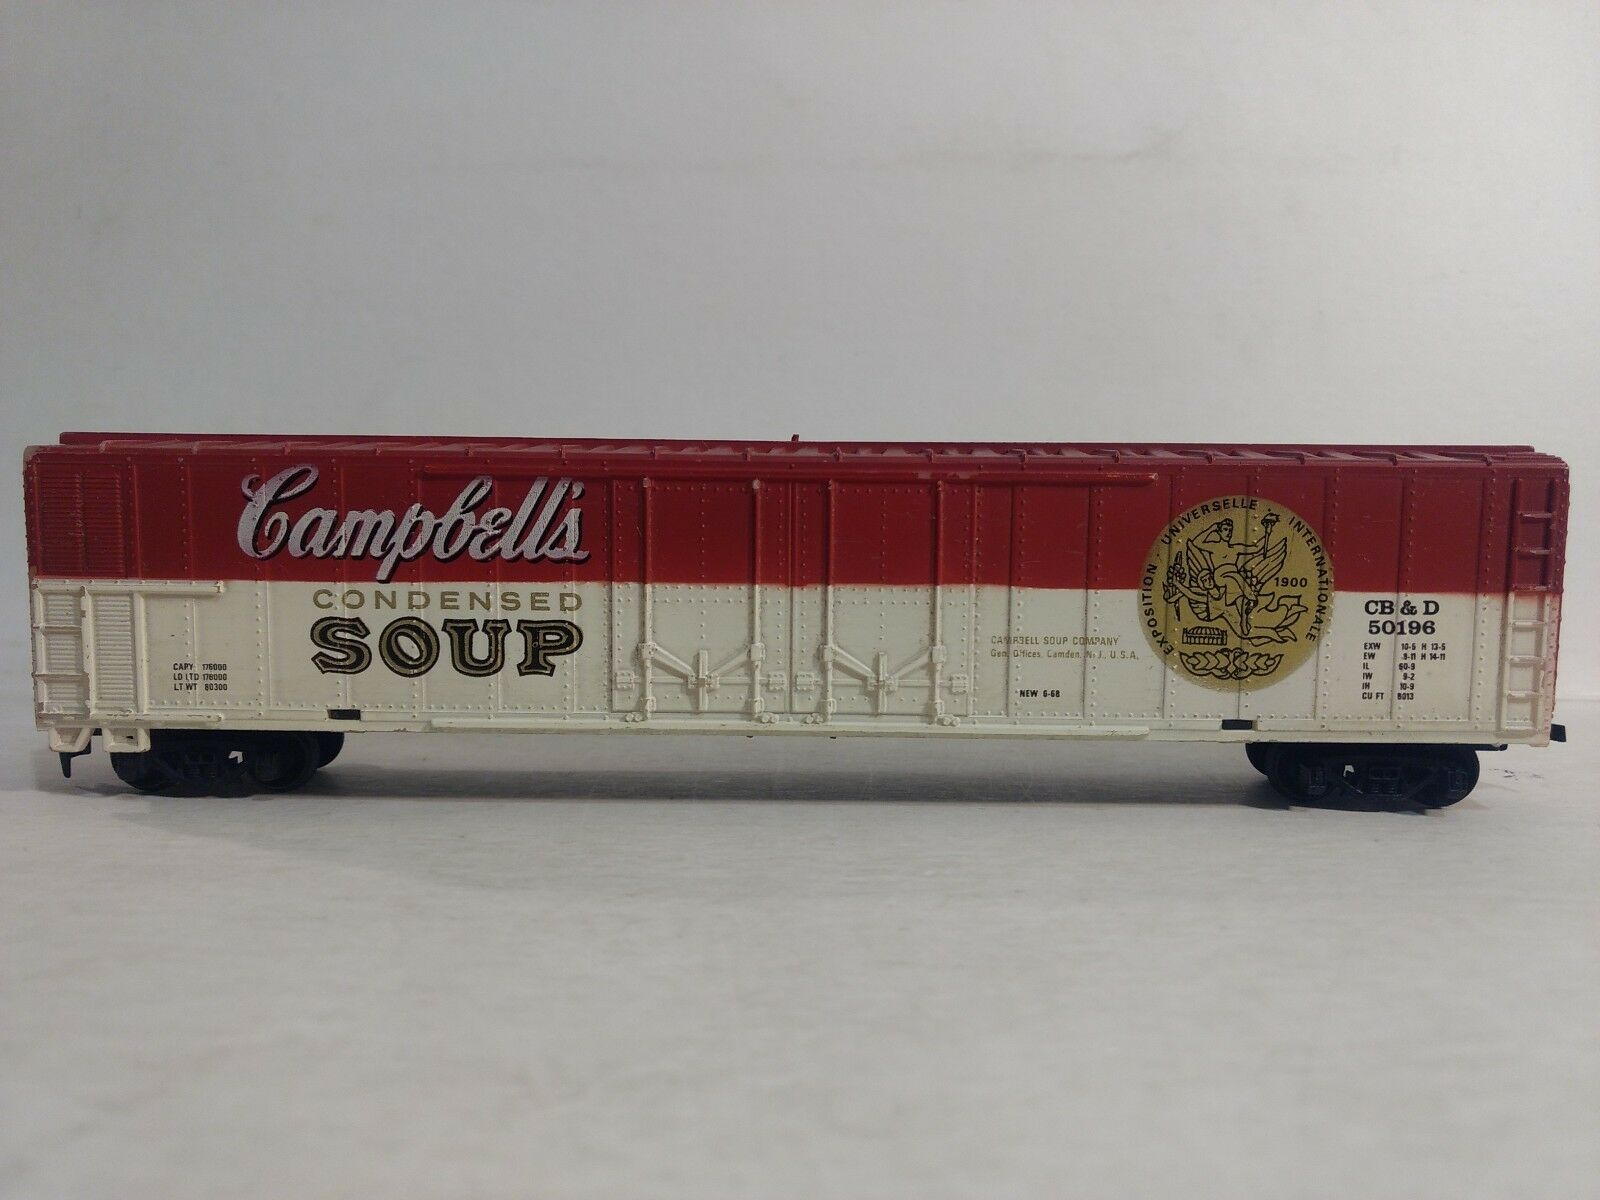 Rare Campbell's Condensed Soup CB & D 50196 Box Car ho Scale Train Car Tyco t519